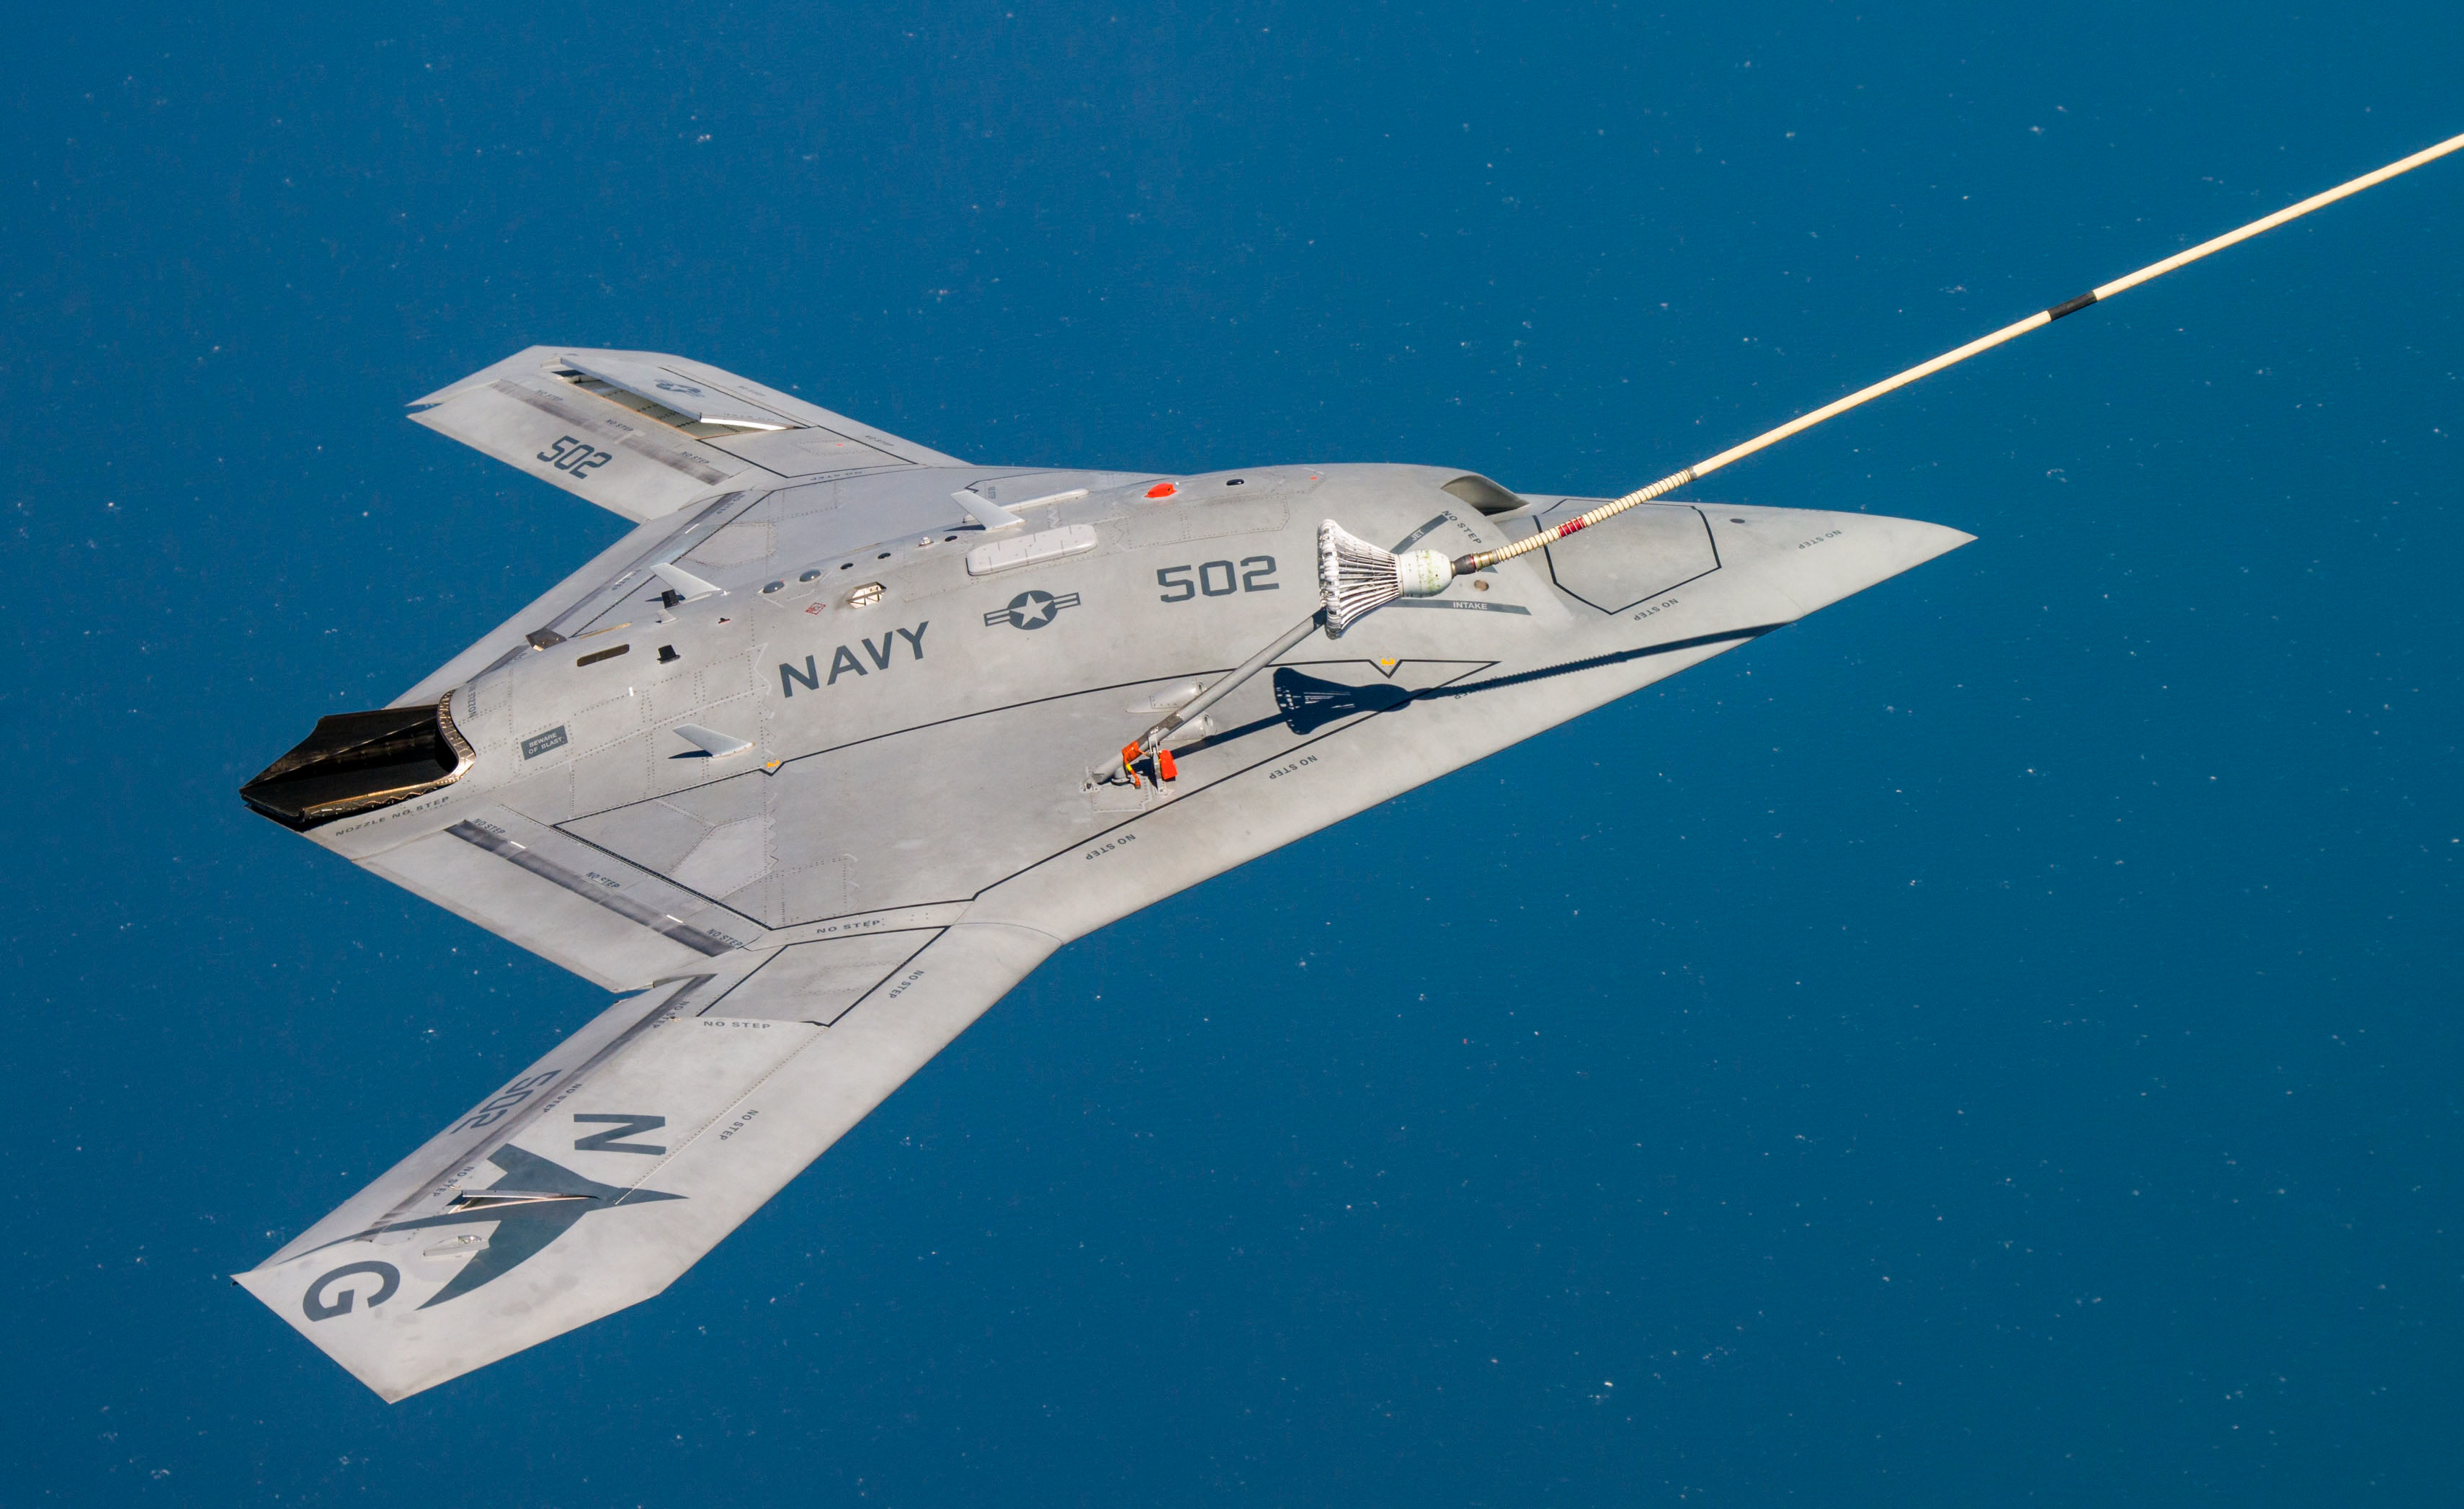 150422-N-CE233-377 PATUXENT RIVER, Md. (April 22, 2015) The Navy's unmanned X-47B receives fuel from an Omega K-707 tanker while operating in the Atlantic Test Ranges over the Chesapeake Bay. This test marked the first time an unmanned aircraft refueled in flight. (U.S. Navy photo/Released)